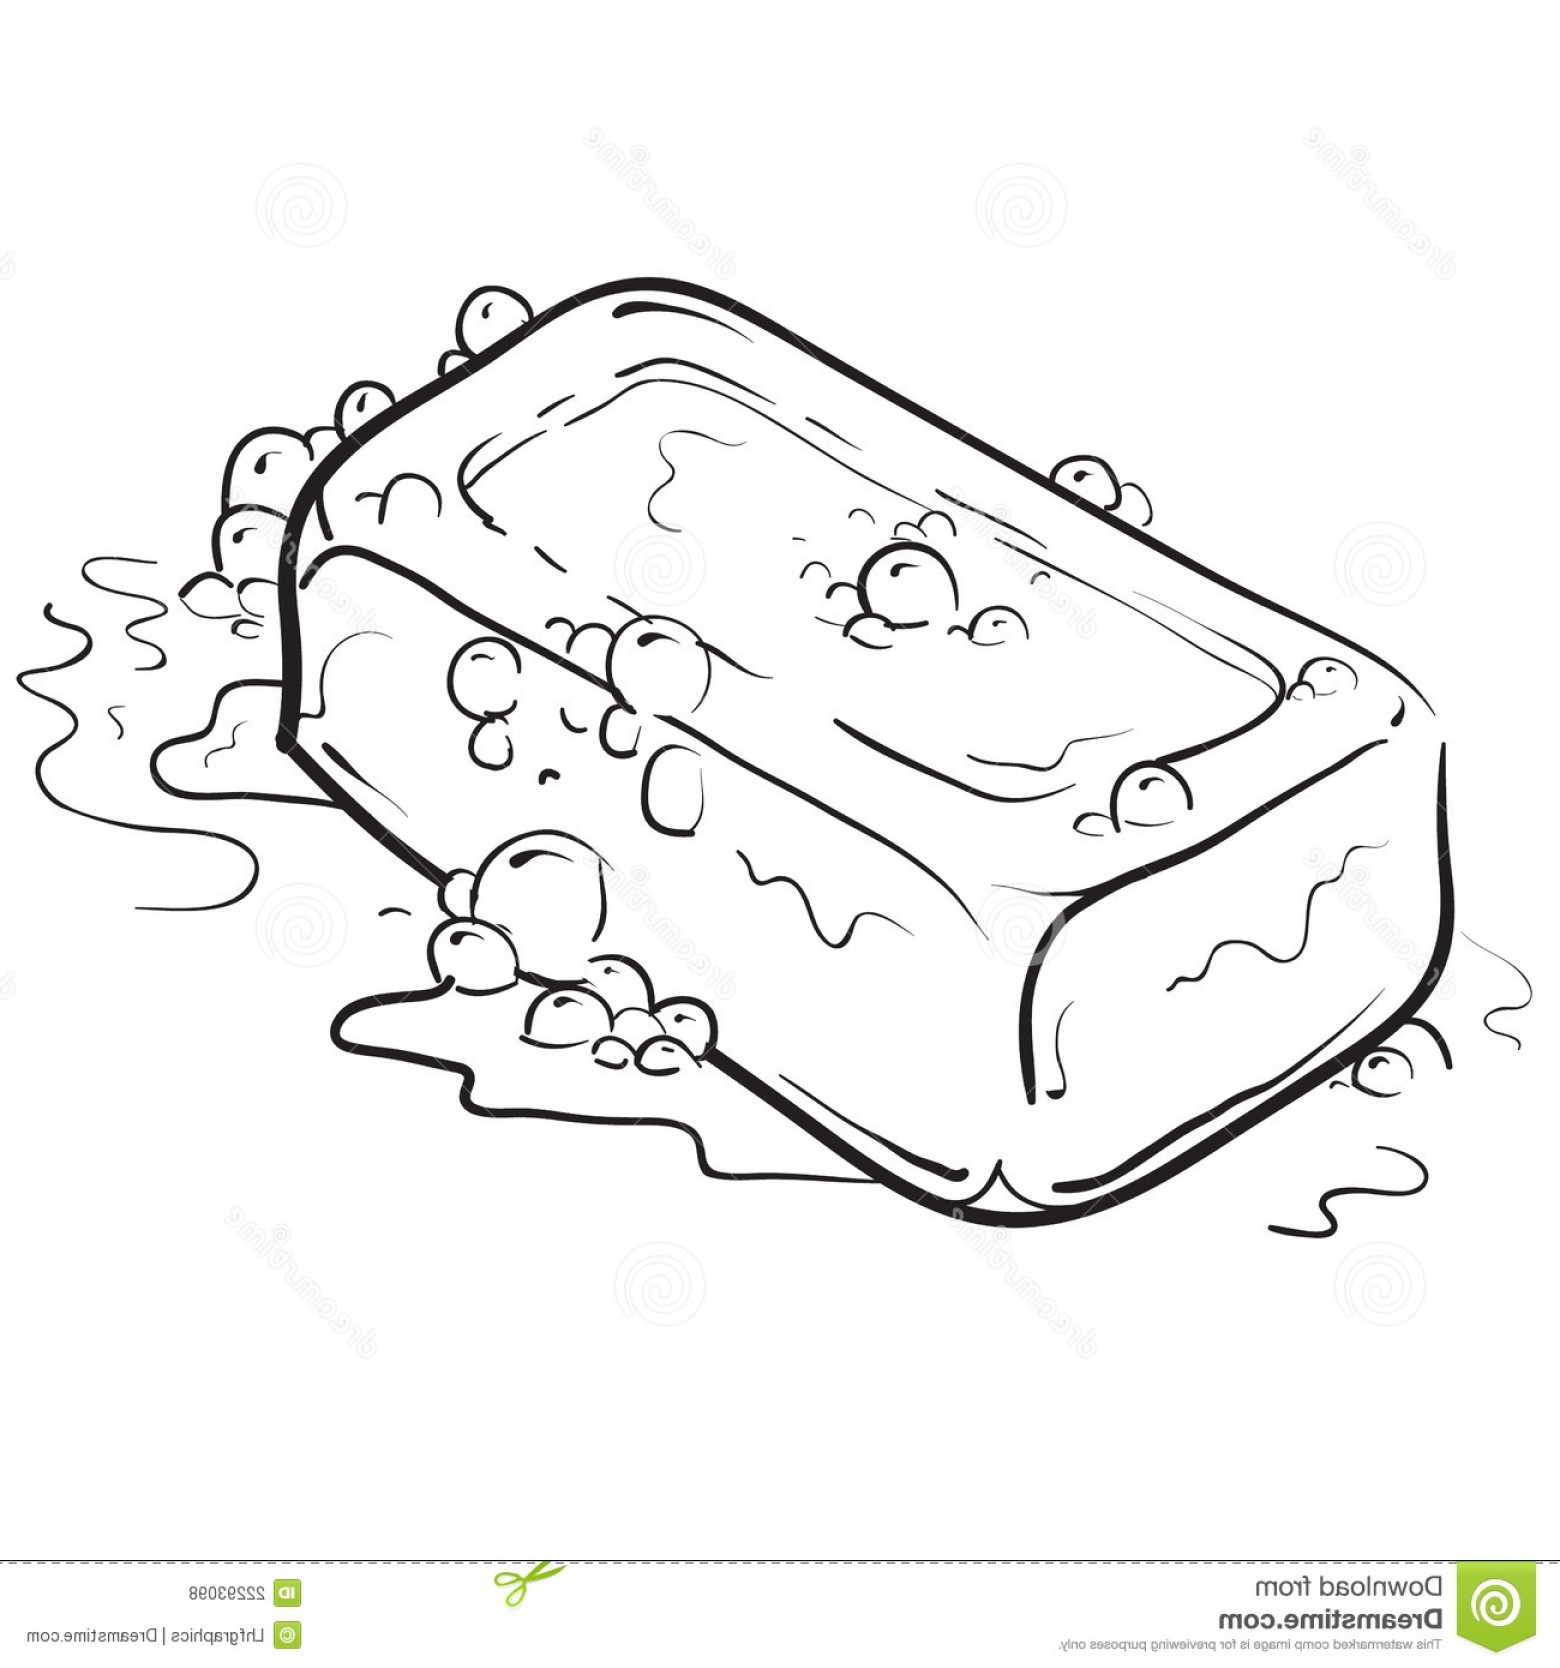 soap clipart black and white 10 187 clipart station